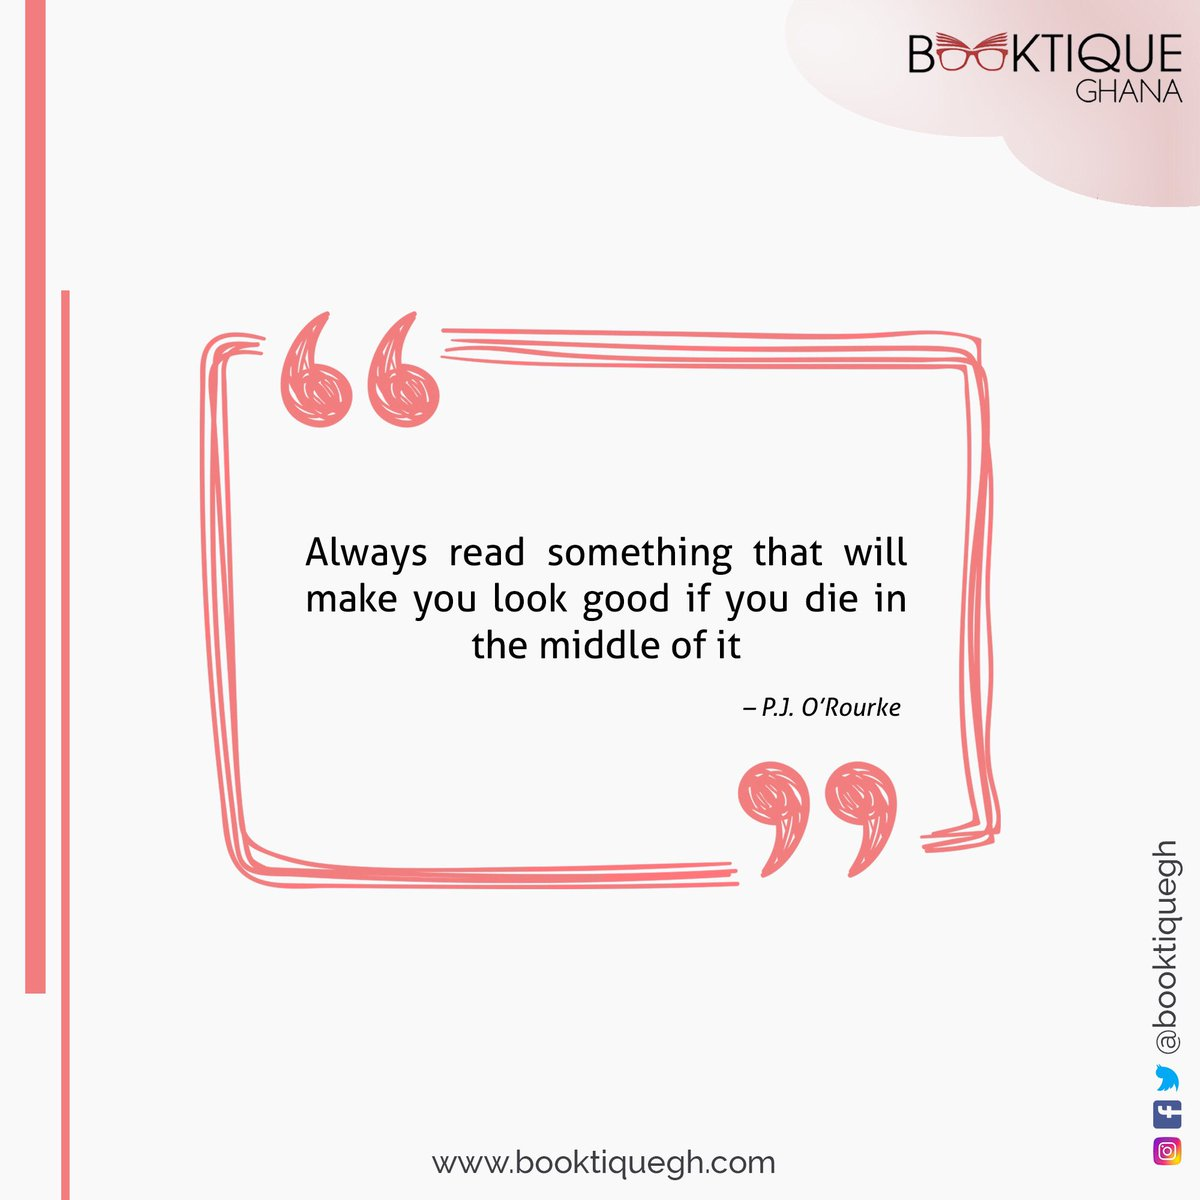 Always read something that will make you look good if you die in the middle of it #bookquotes #bookstagram #ghanabookstore #booktiquegh #readingcommunity<br>http://pic.twitter.com/x6ikORXx1O